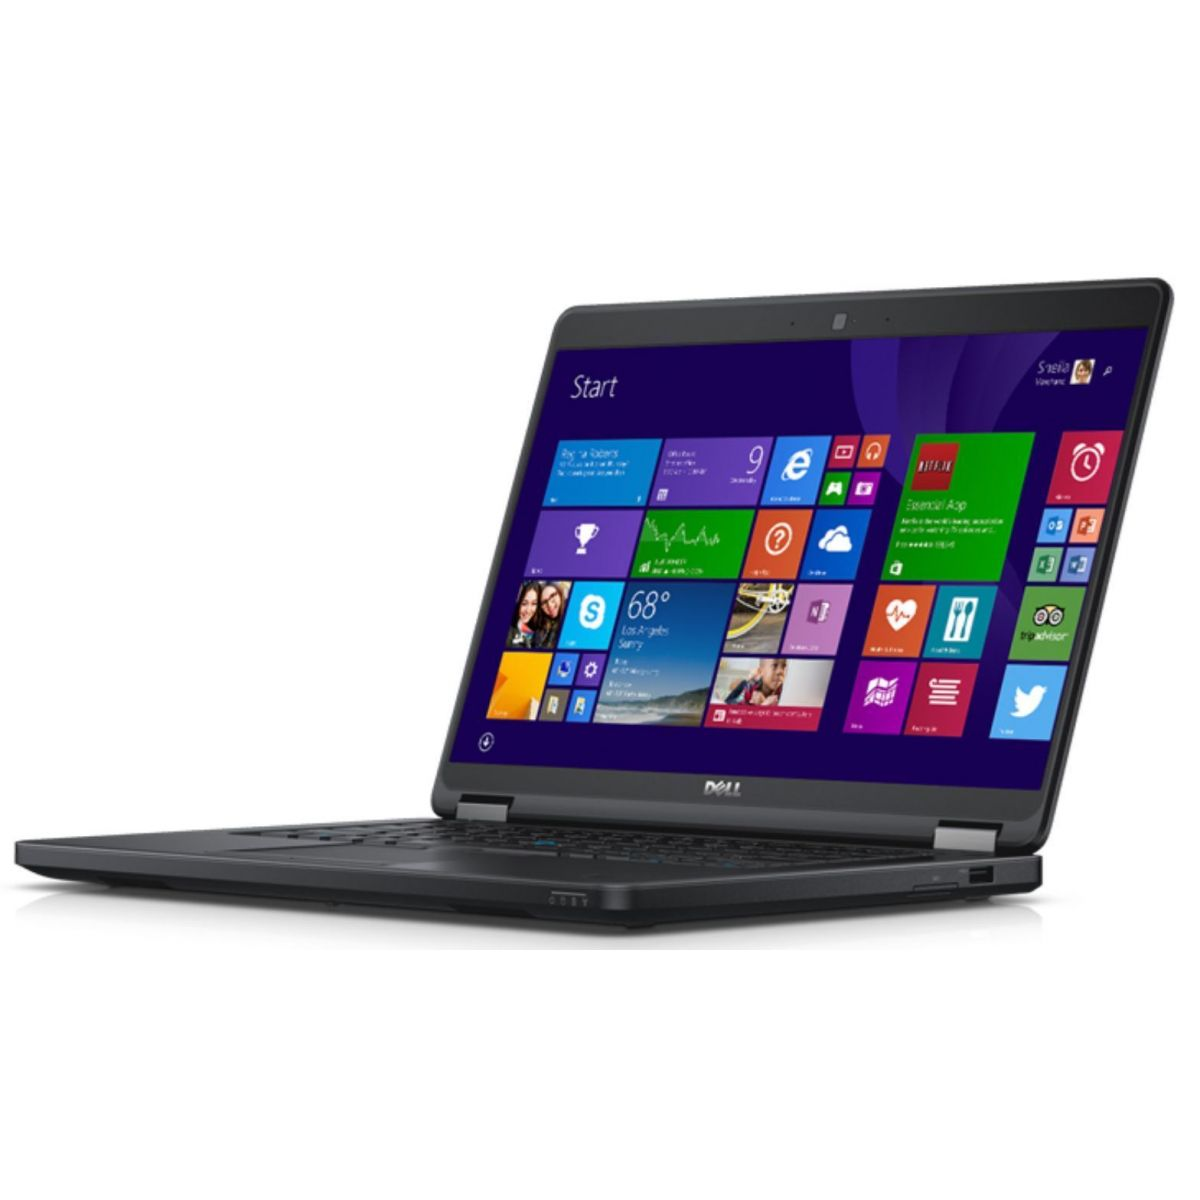 Notebook DELL Latitude Ultrabook E5450 - Intel Core i5 VPro , 8GB de Memória, HD de 1TB, Wireless AC, Bluetooth, Tela LED  de 14